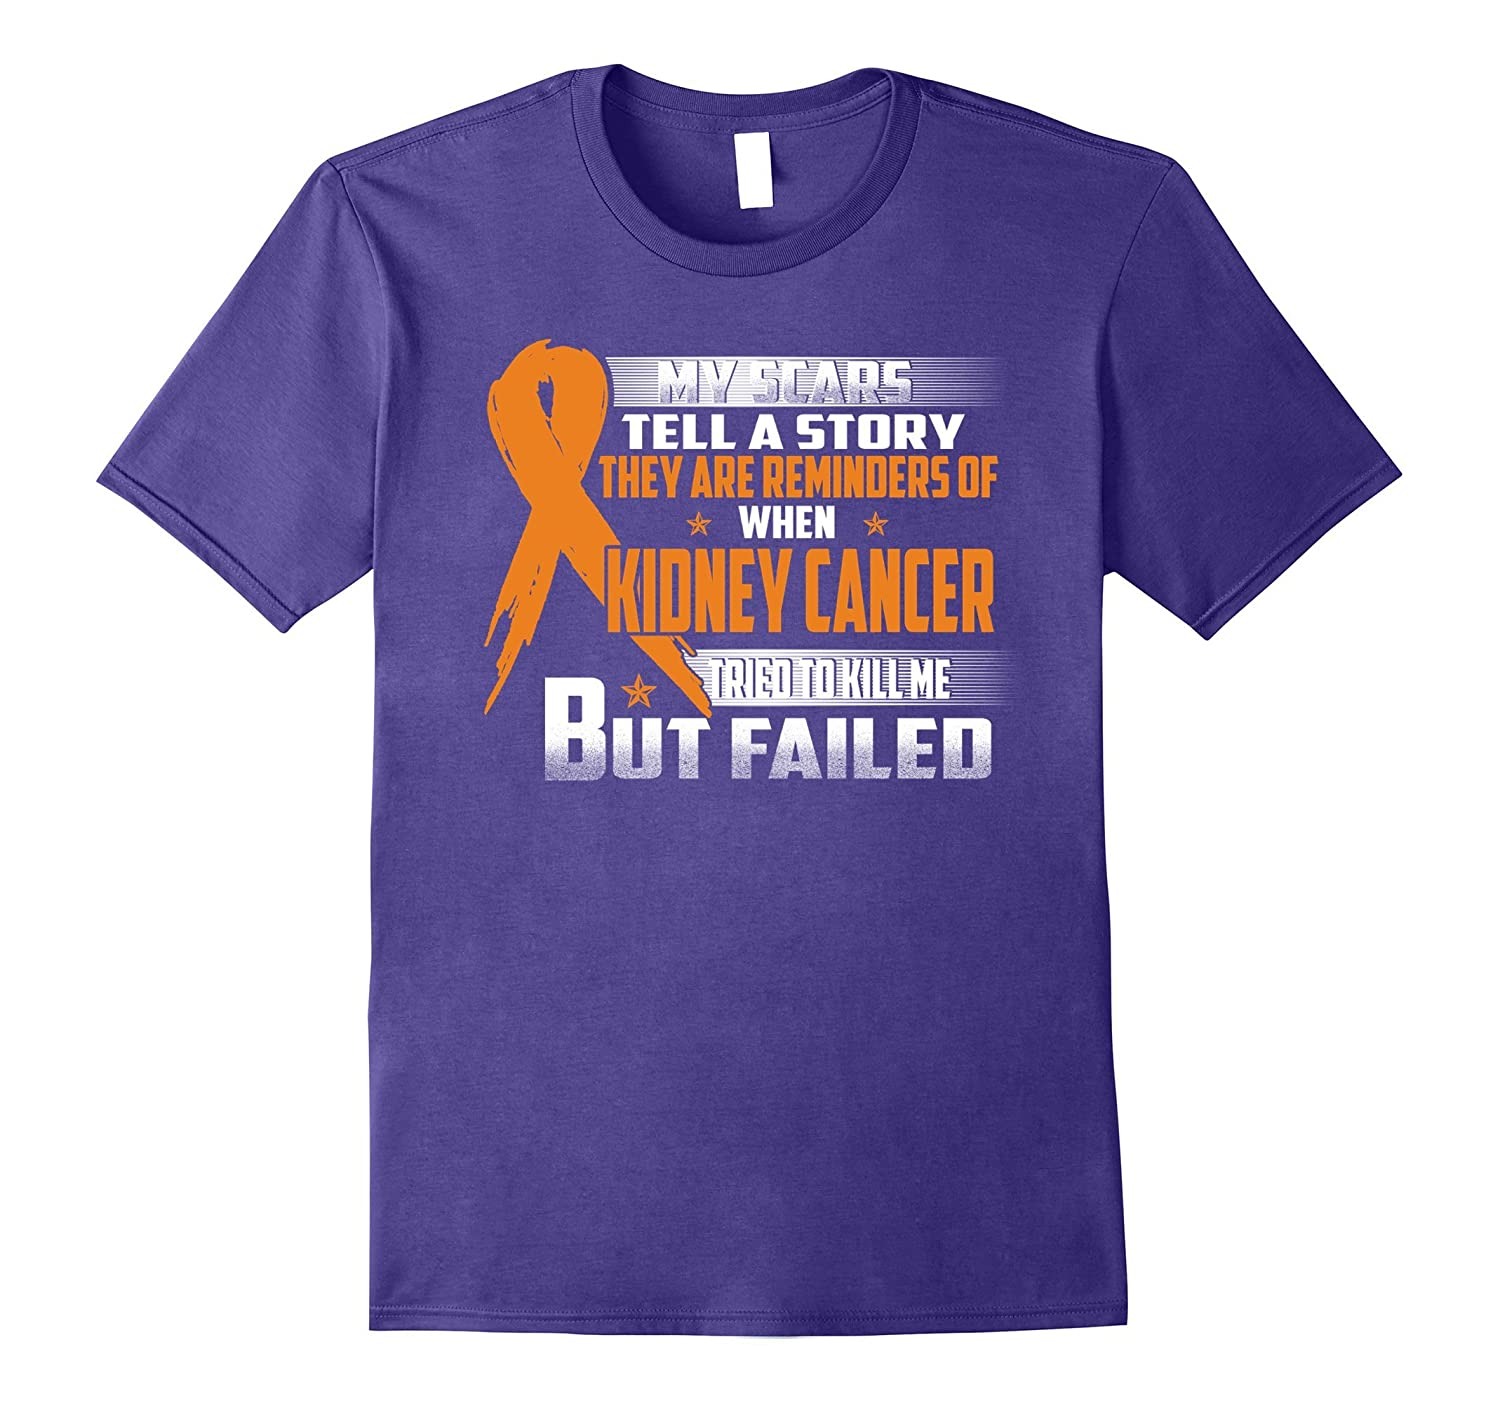 My scars remind me when KIDNEY CANCER tried to kill me-FL